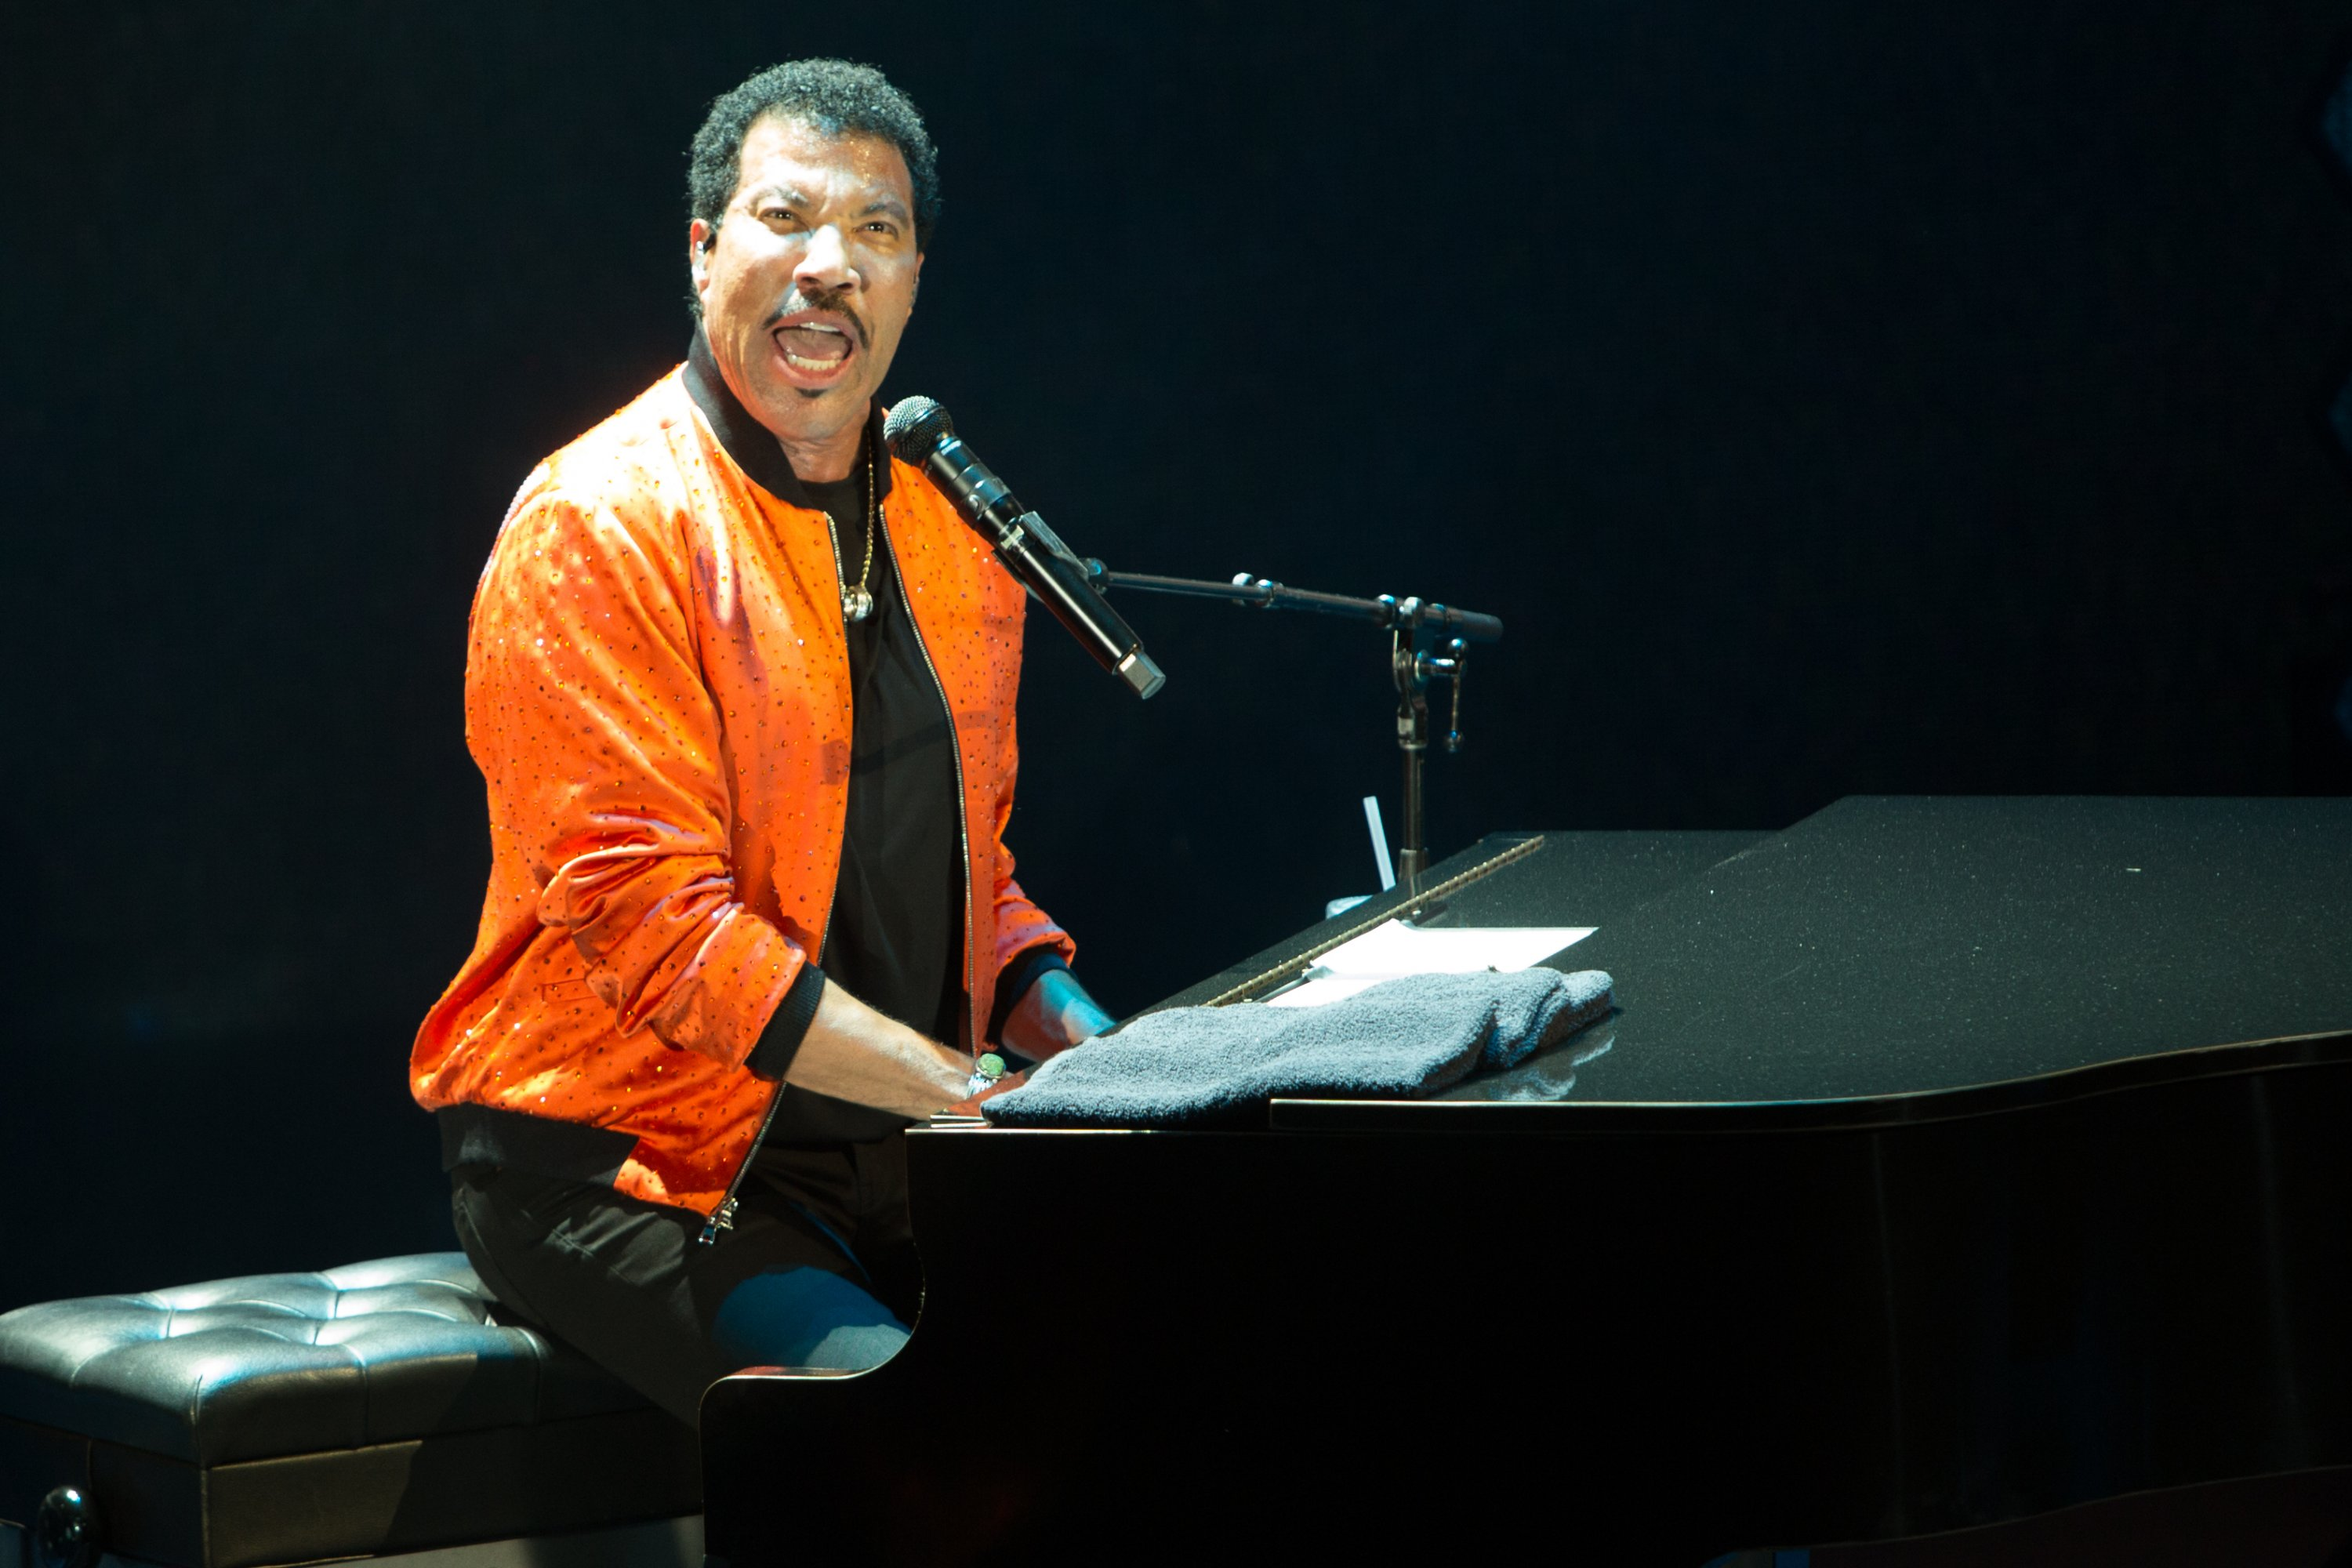 Lionel Ritchie 'Hello' tour. (Photo credit Chris Nicholson.)